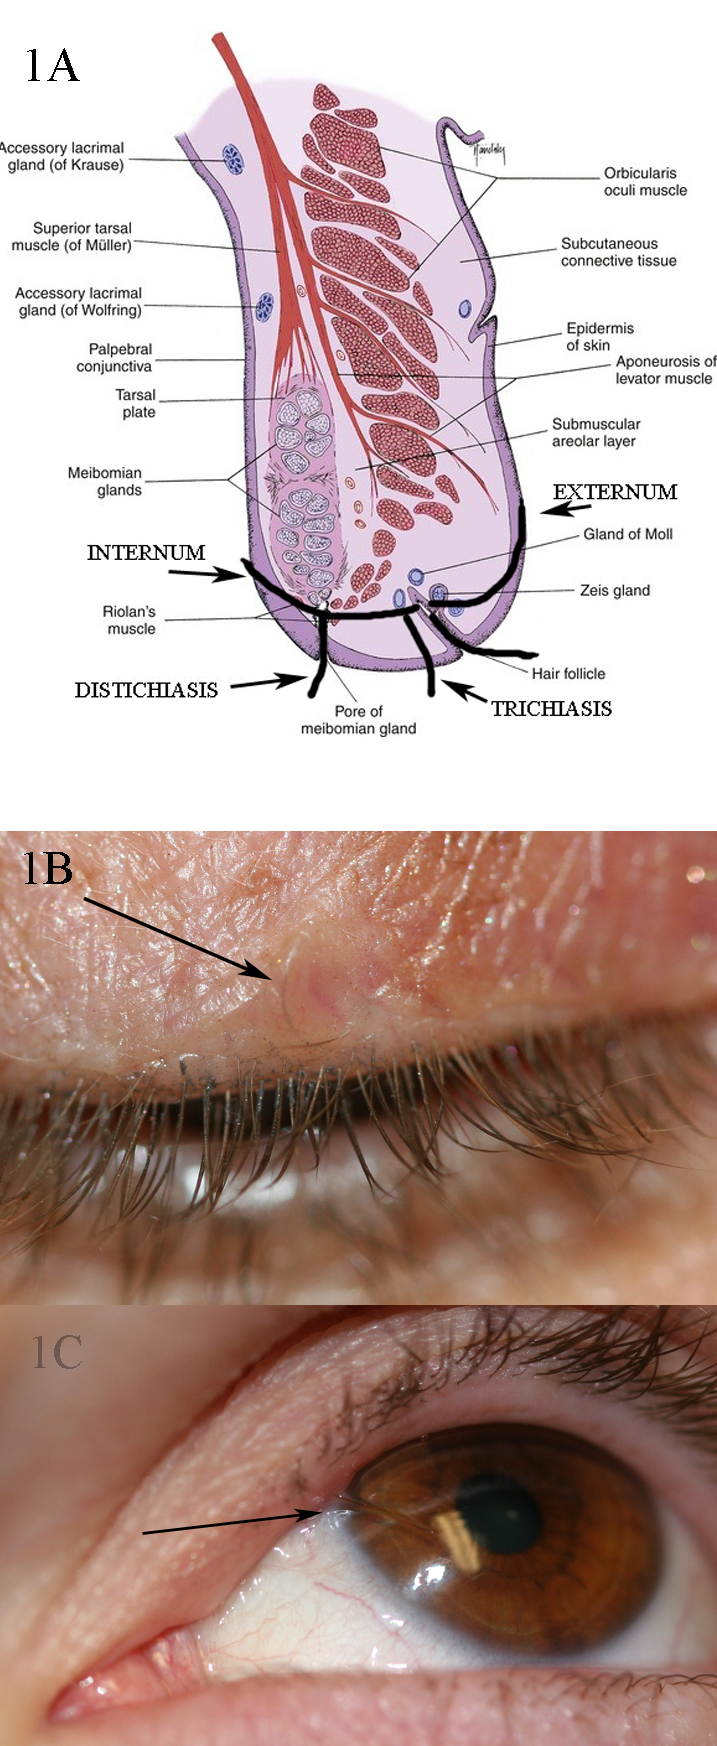 1A: shows the different orientations of lashes in trichiasis, distichiasis, cilia incarnata internum and cilia incarnata externum.